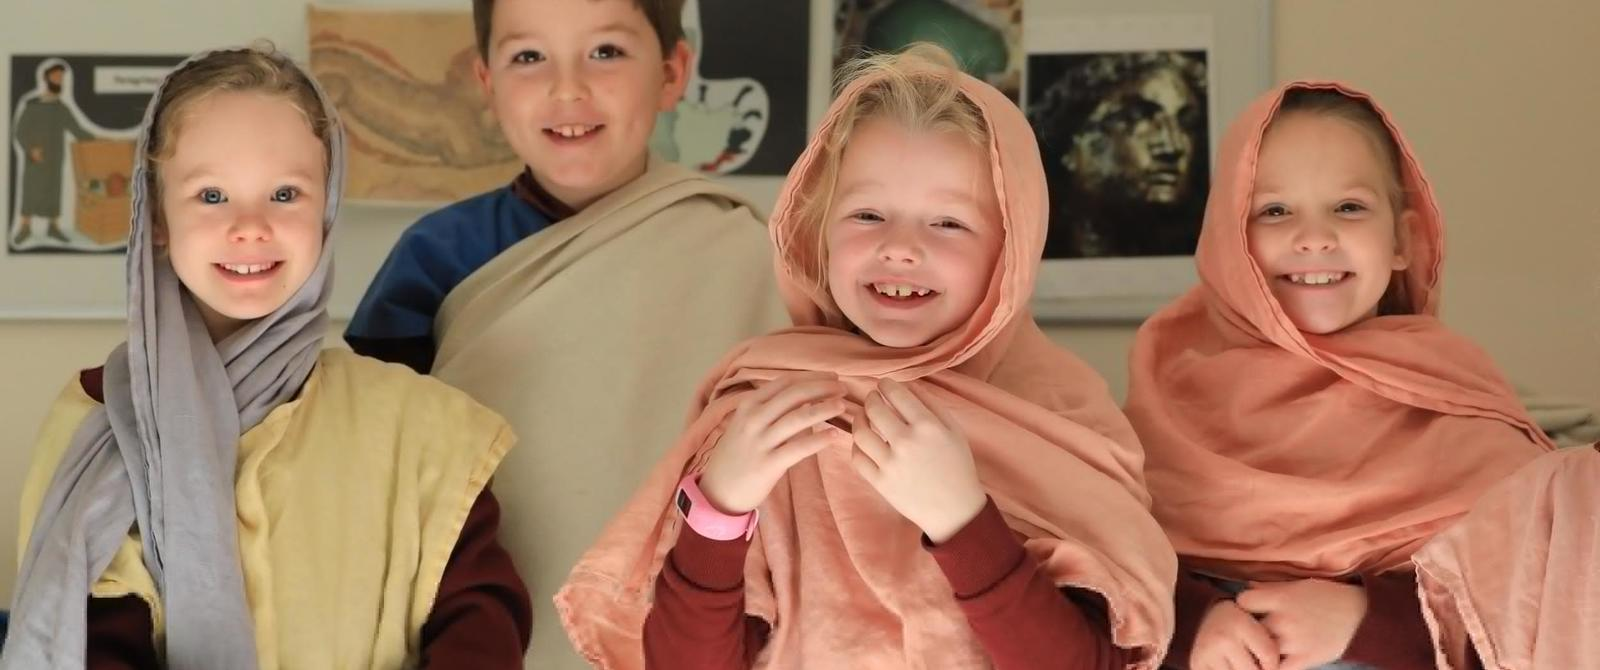 Image: Children dressed up in togas